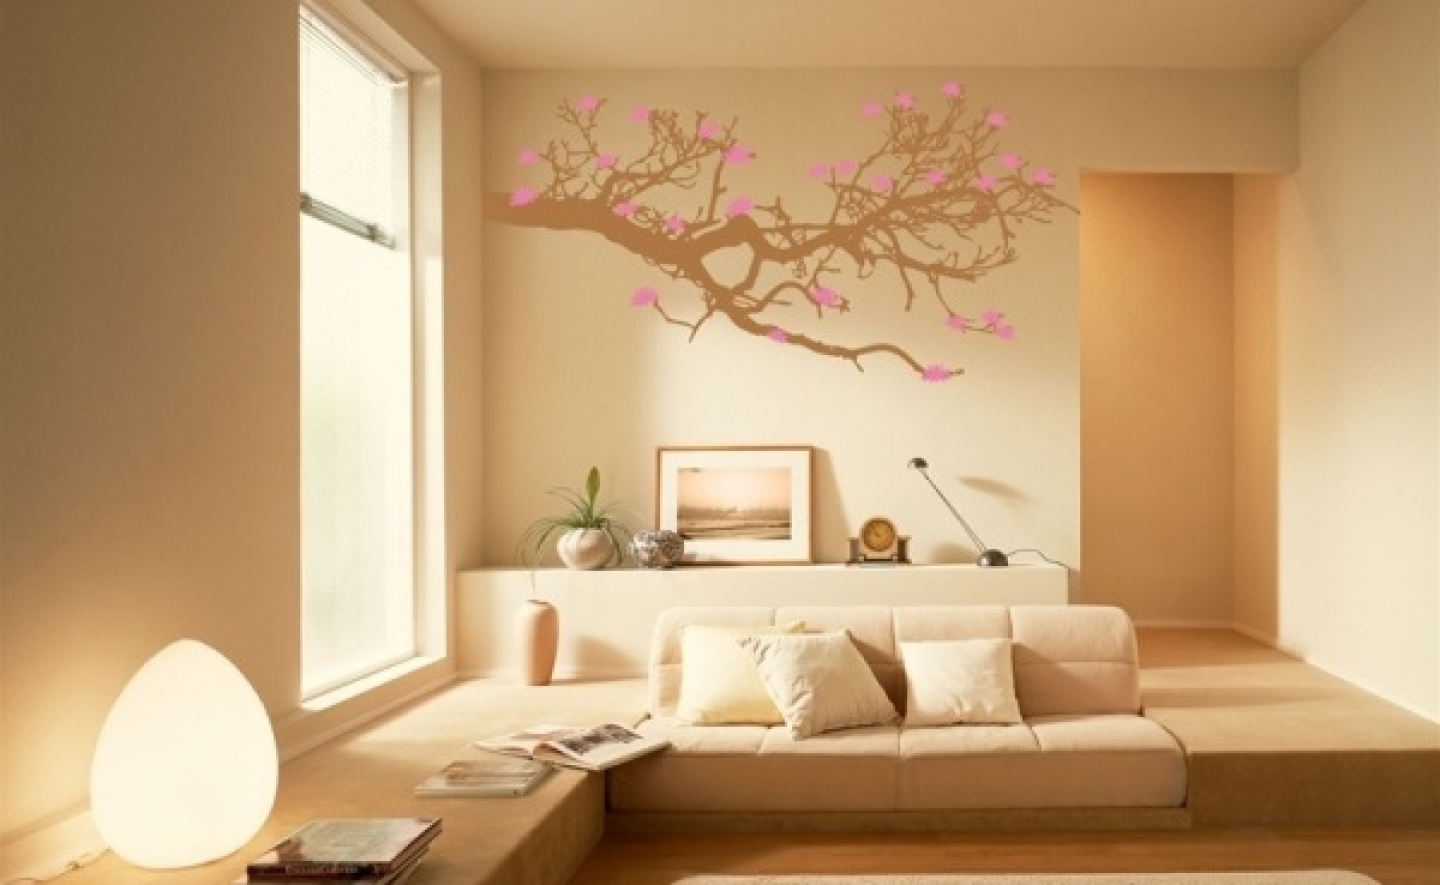 Wallpaper interior designs wall painting design ideas fun interior 1440x885